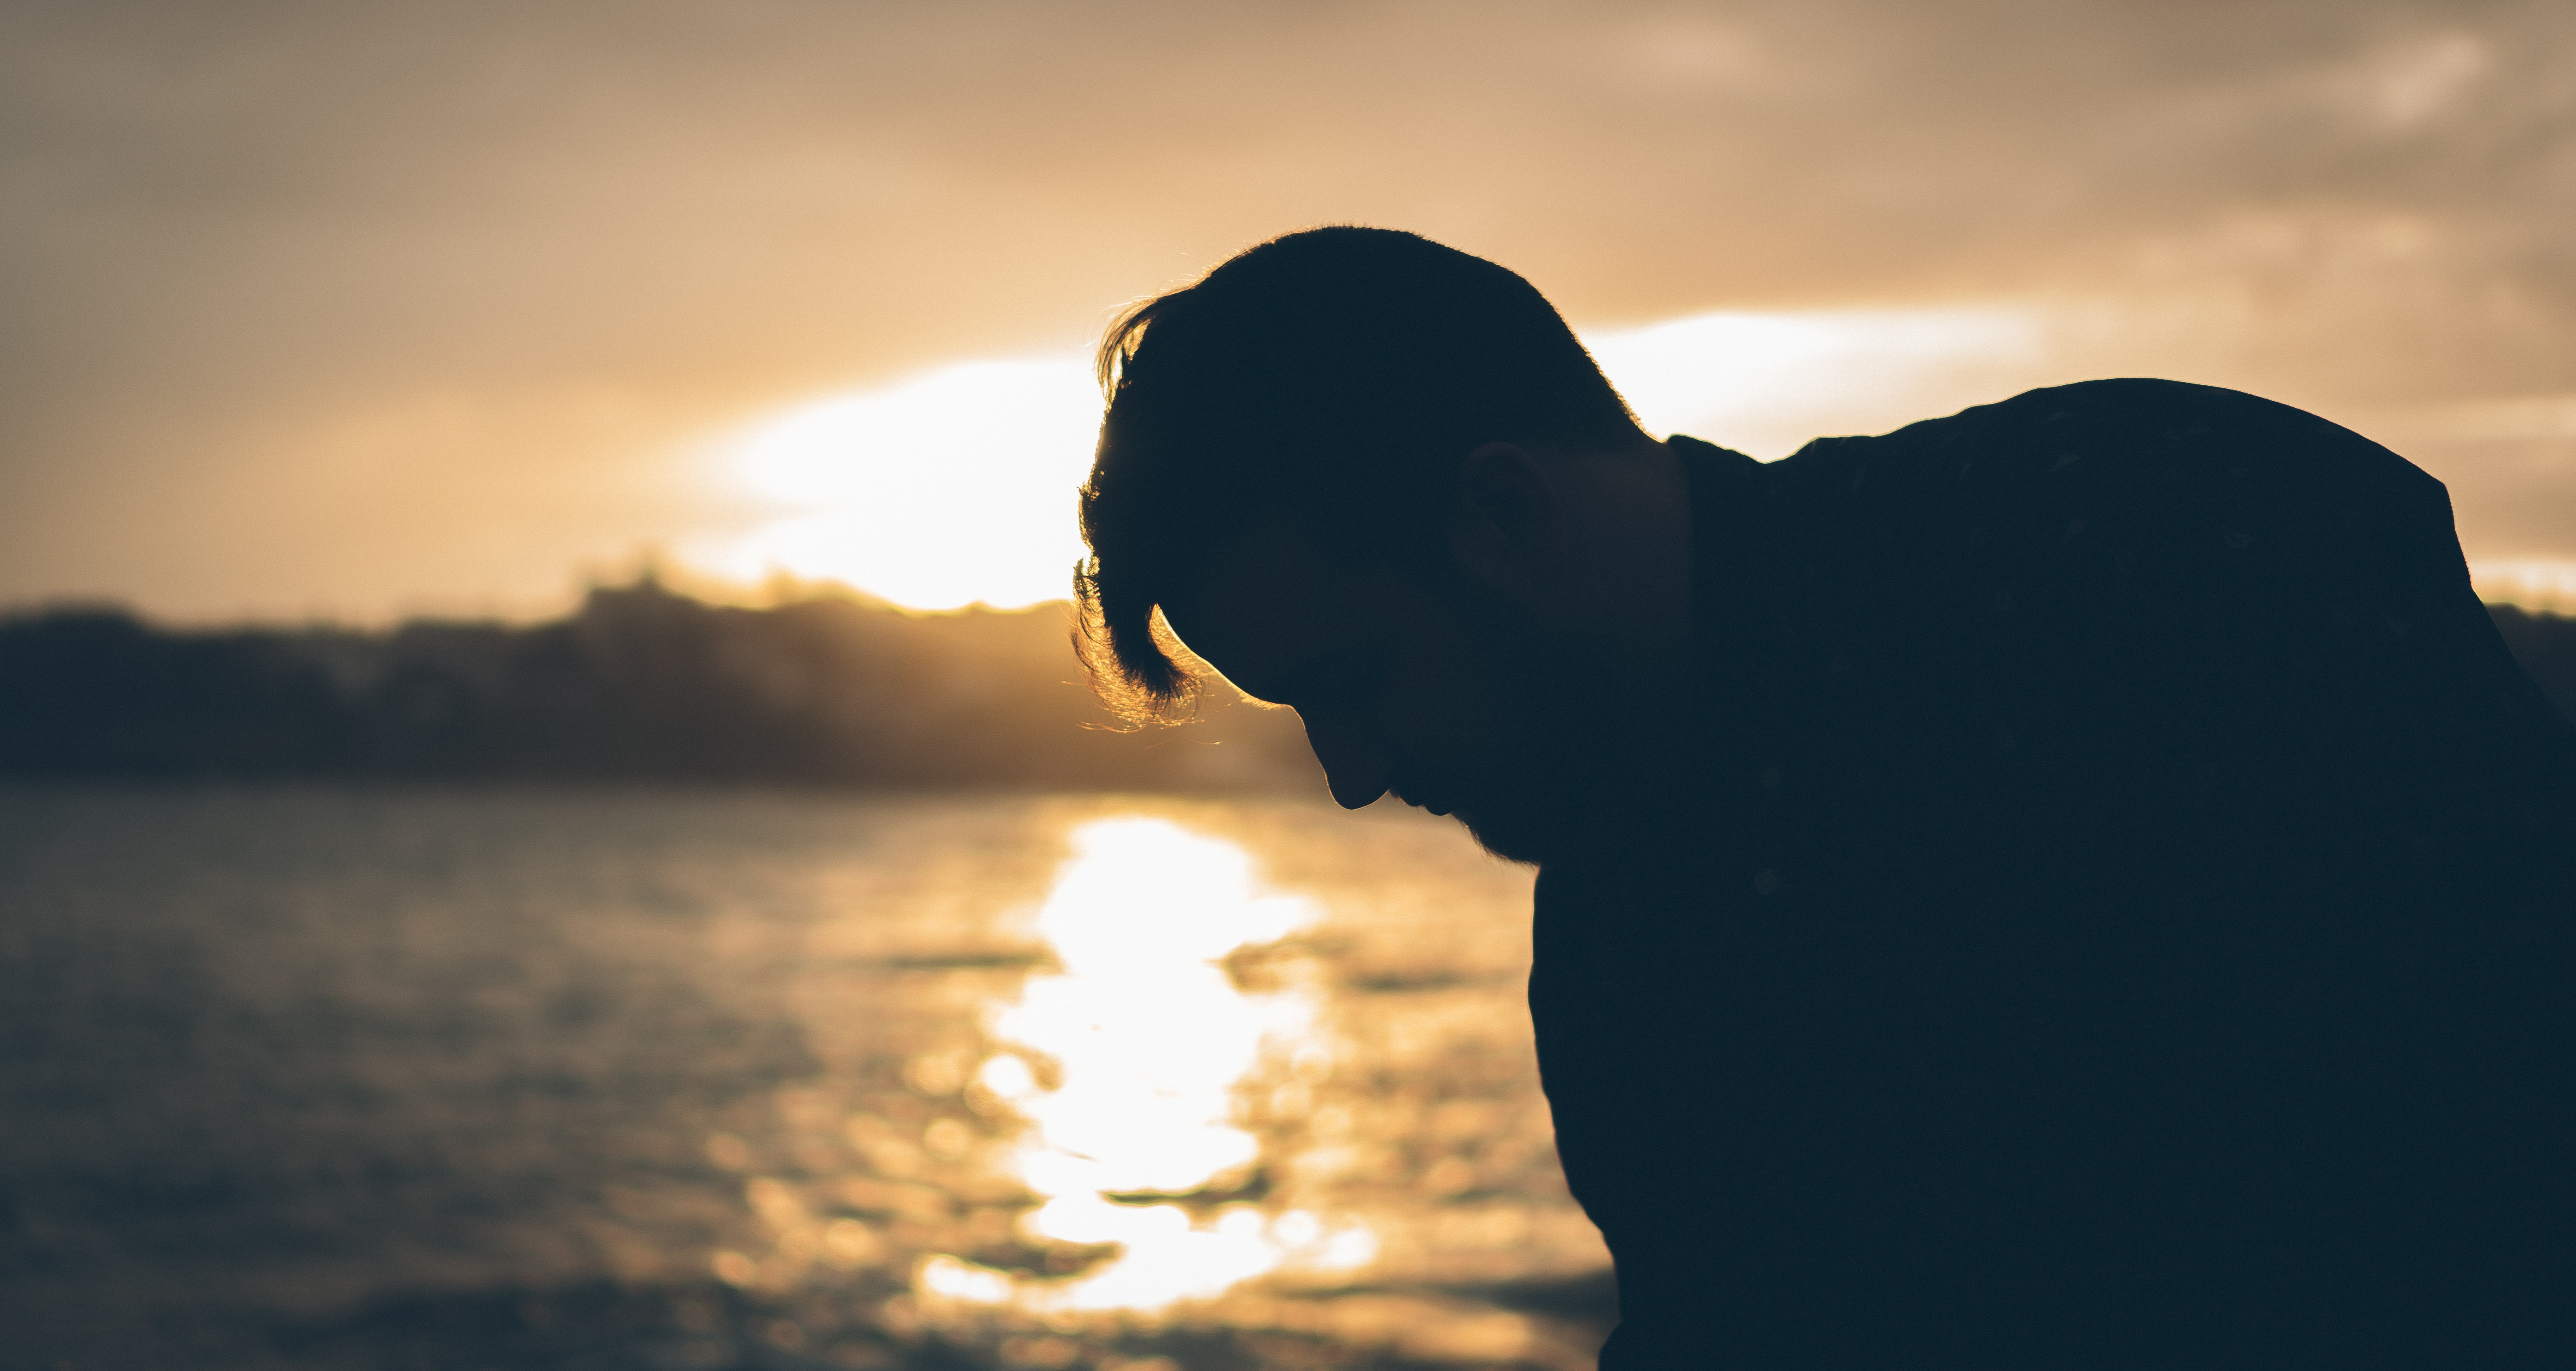 man standing near body of water during sunset